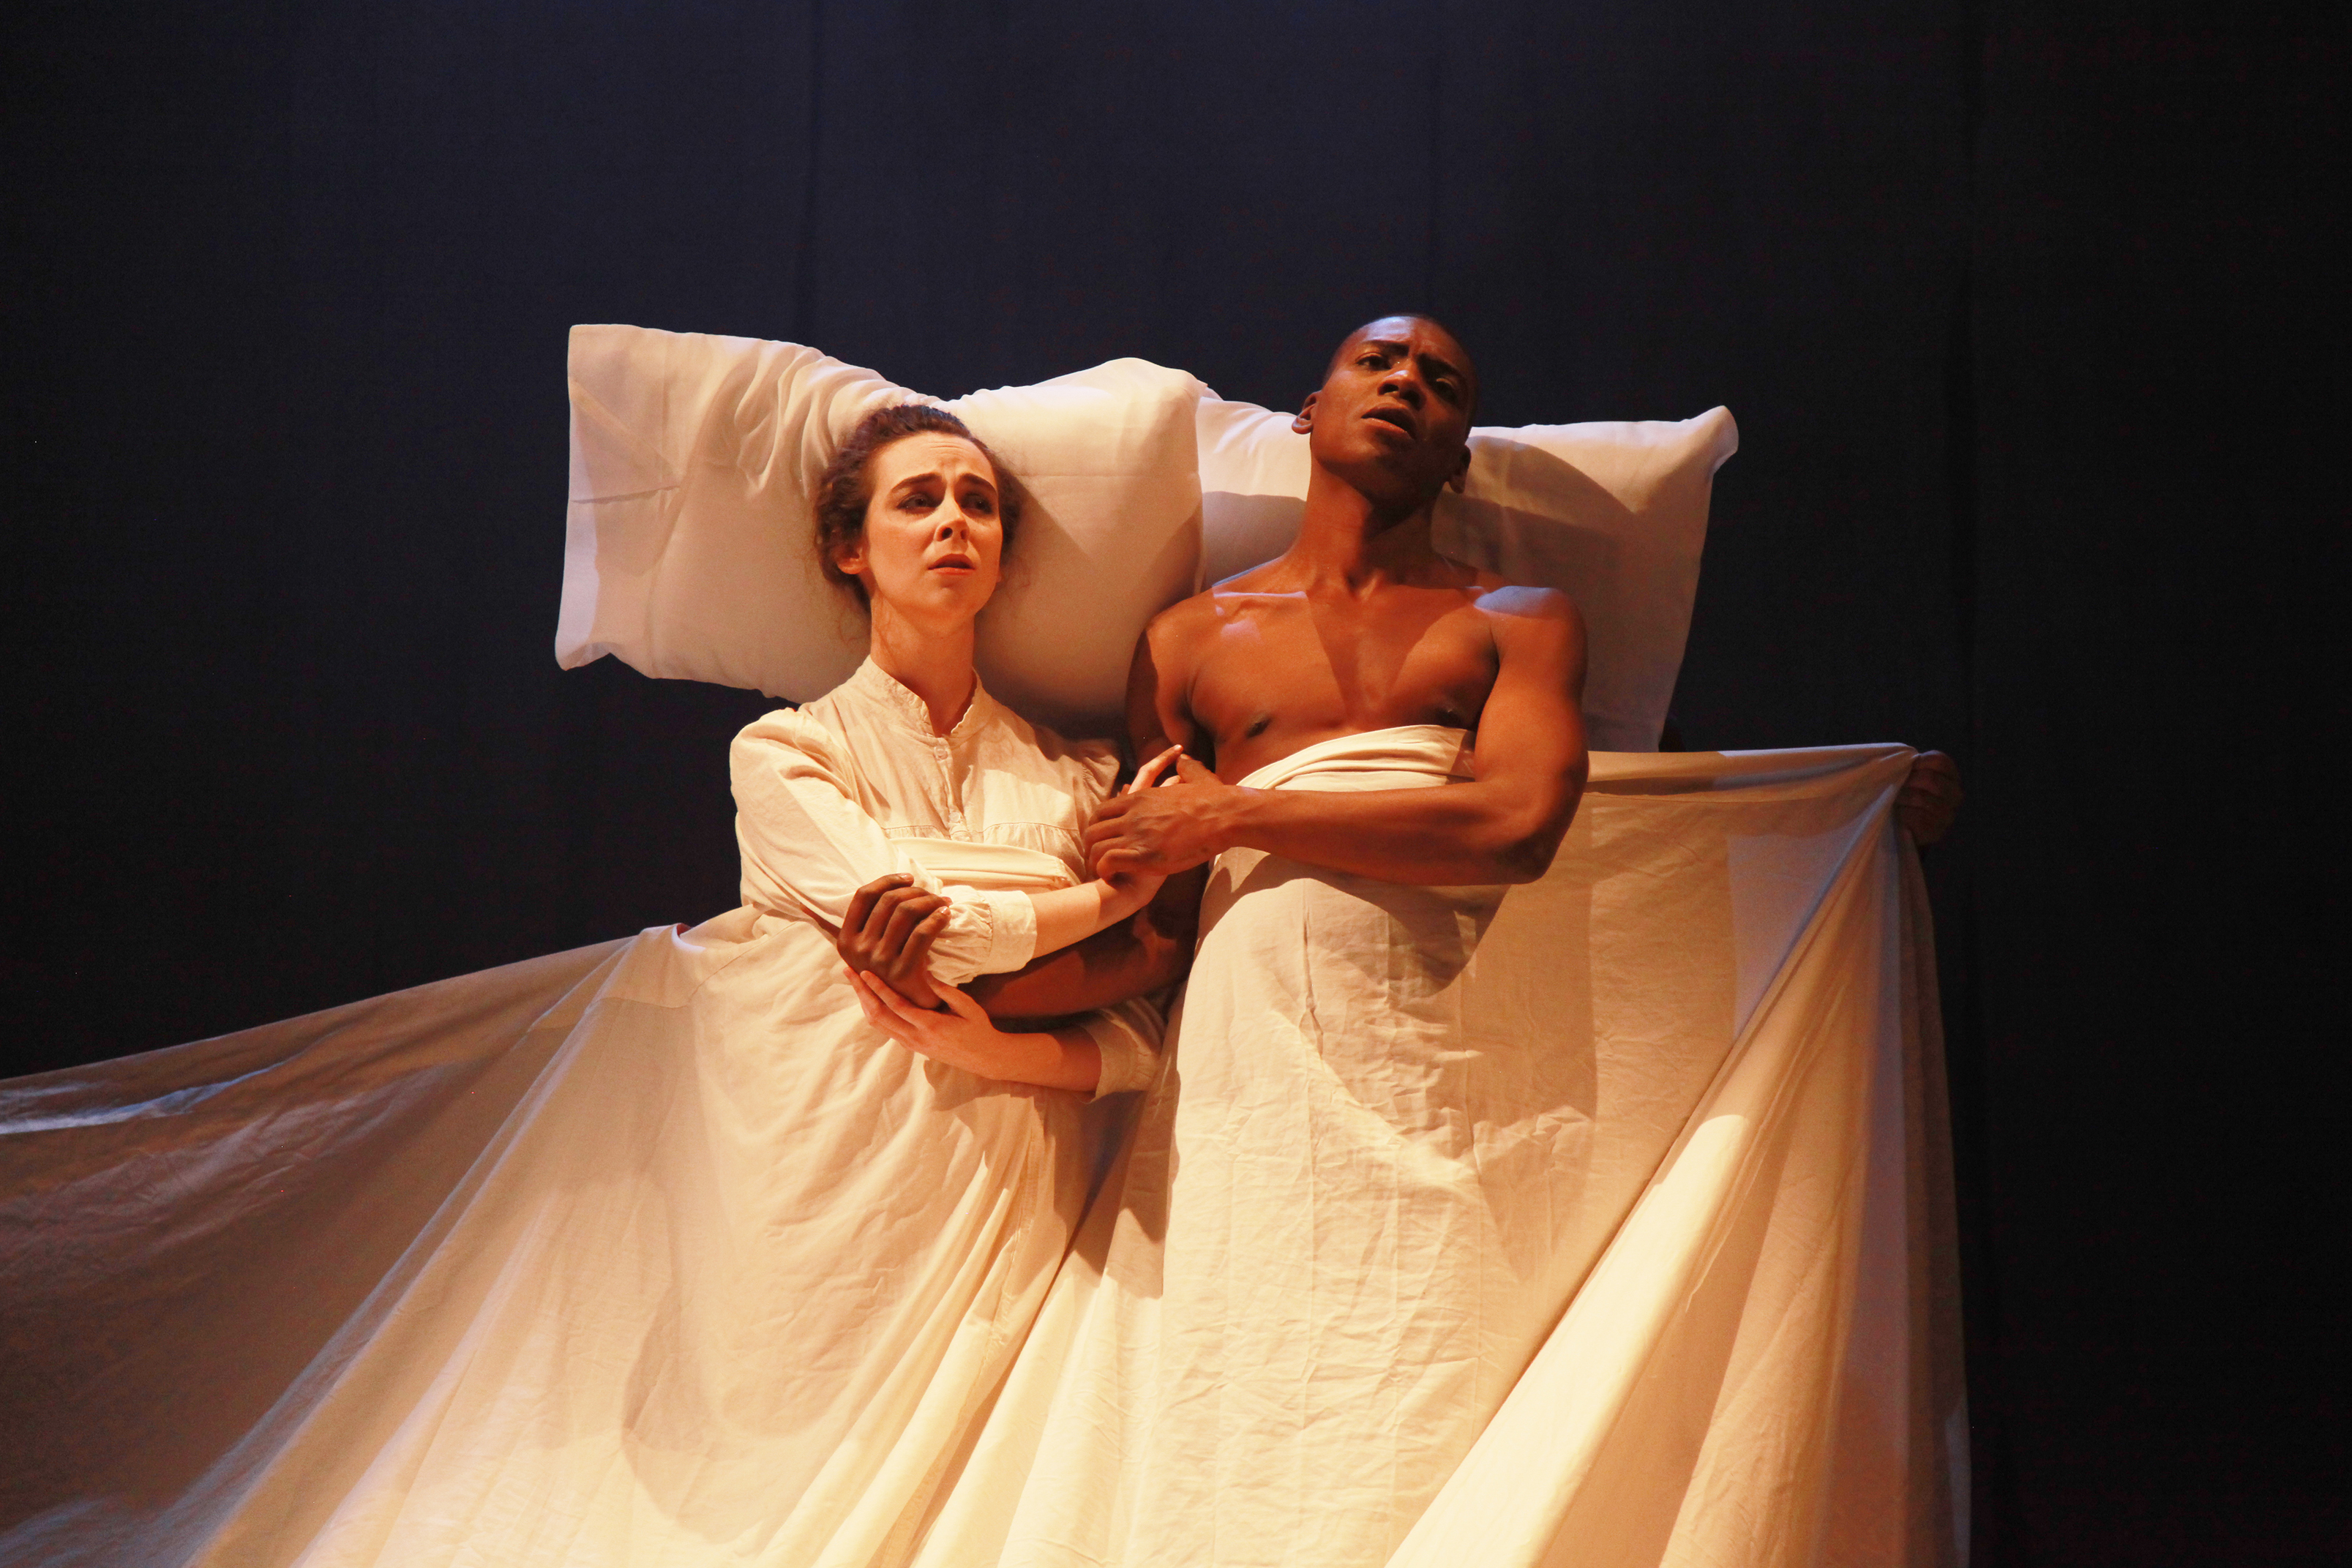 two performers laying in bed